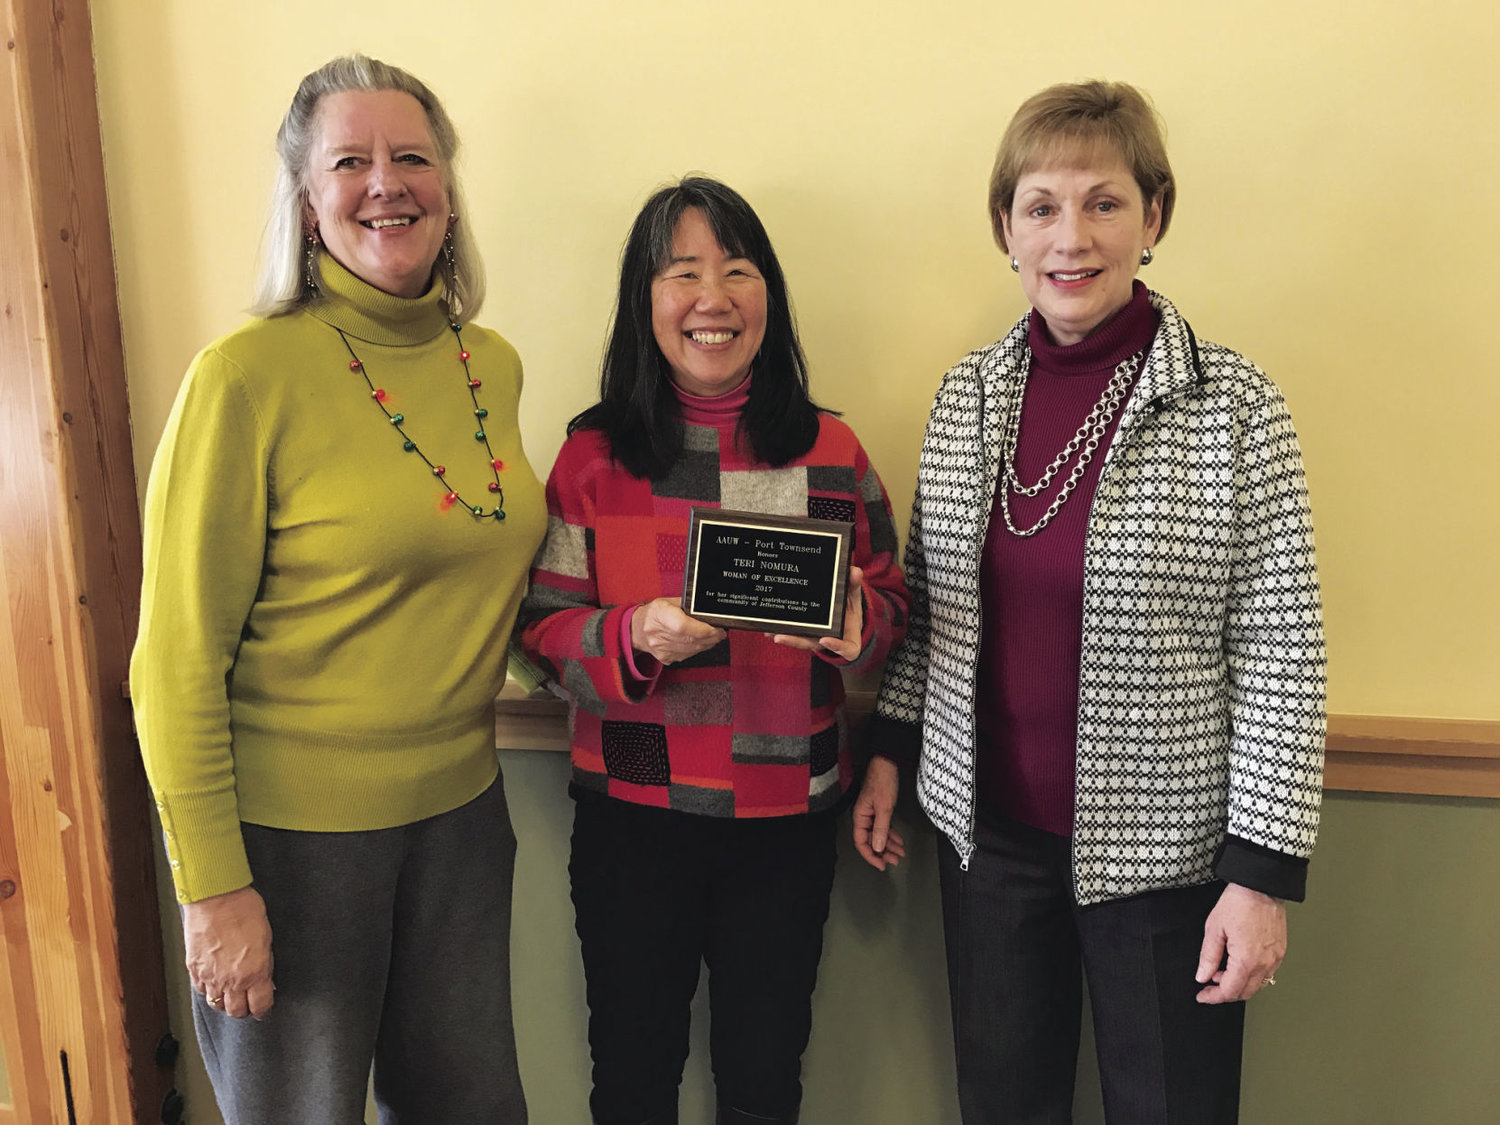 Teri Nomura (center), received the AAUW PT's Woman of Excellence award, with AAUW PT copresidents Jean Stastny (left) and Lynn Meyer. Courtesy photo